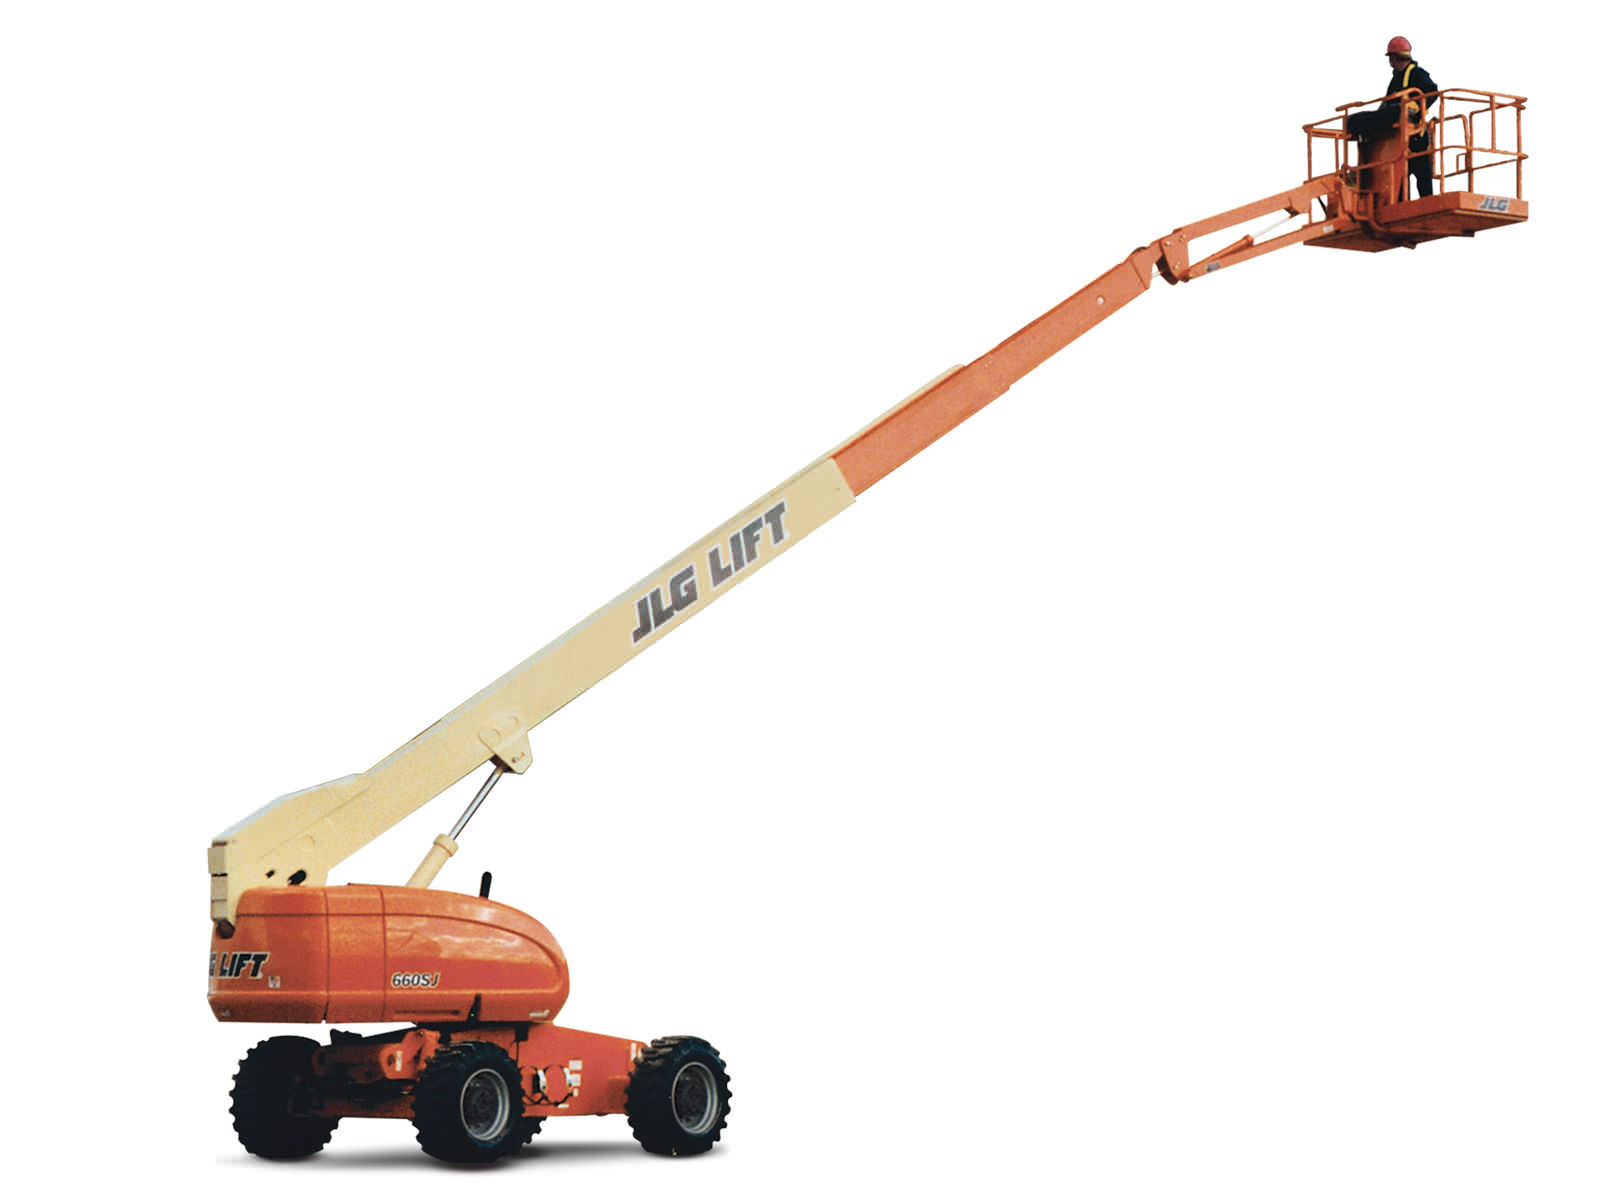 Diesel telescopic boom lift